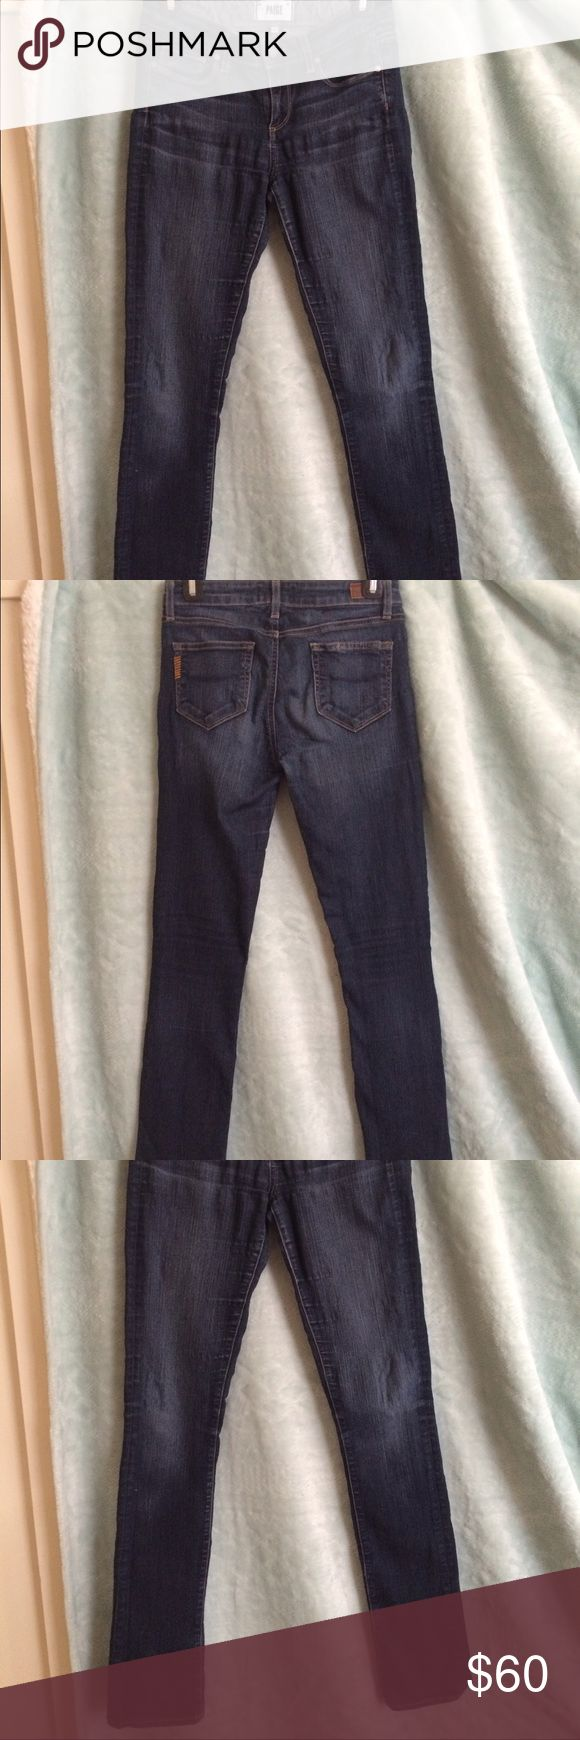 Paige Jeans These Paige jeans are stretchy and comfortable and have some wear in the knee and upper parts of the Jean where the material is a bit thinner and looks wrinkled. They are not quite skinny jeans- just a bit looser. Paige Jeans Jeans Straight Leg